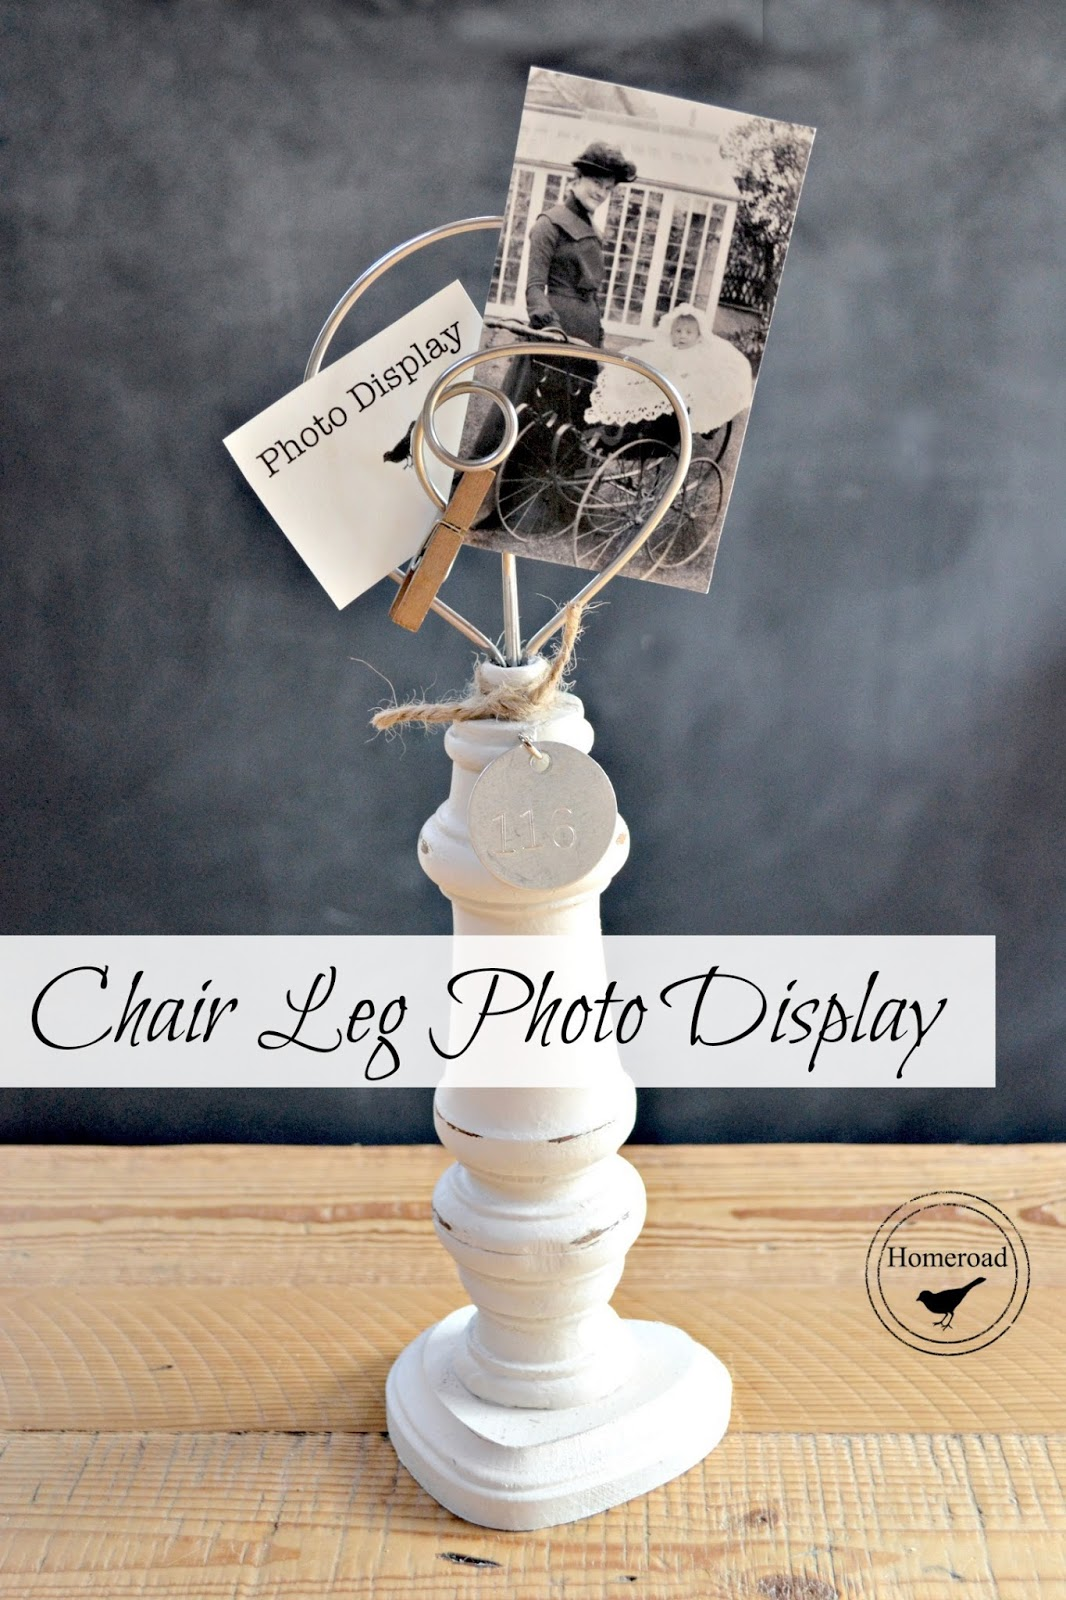 chair leg vintage photo display www.homeroad.net